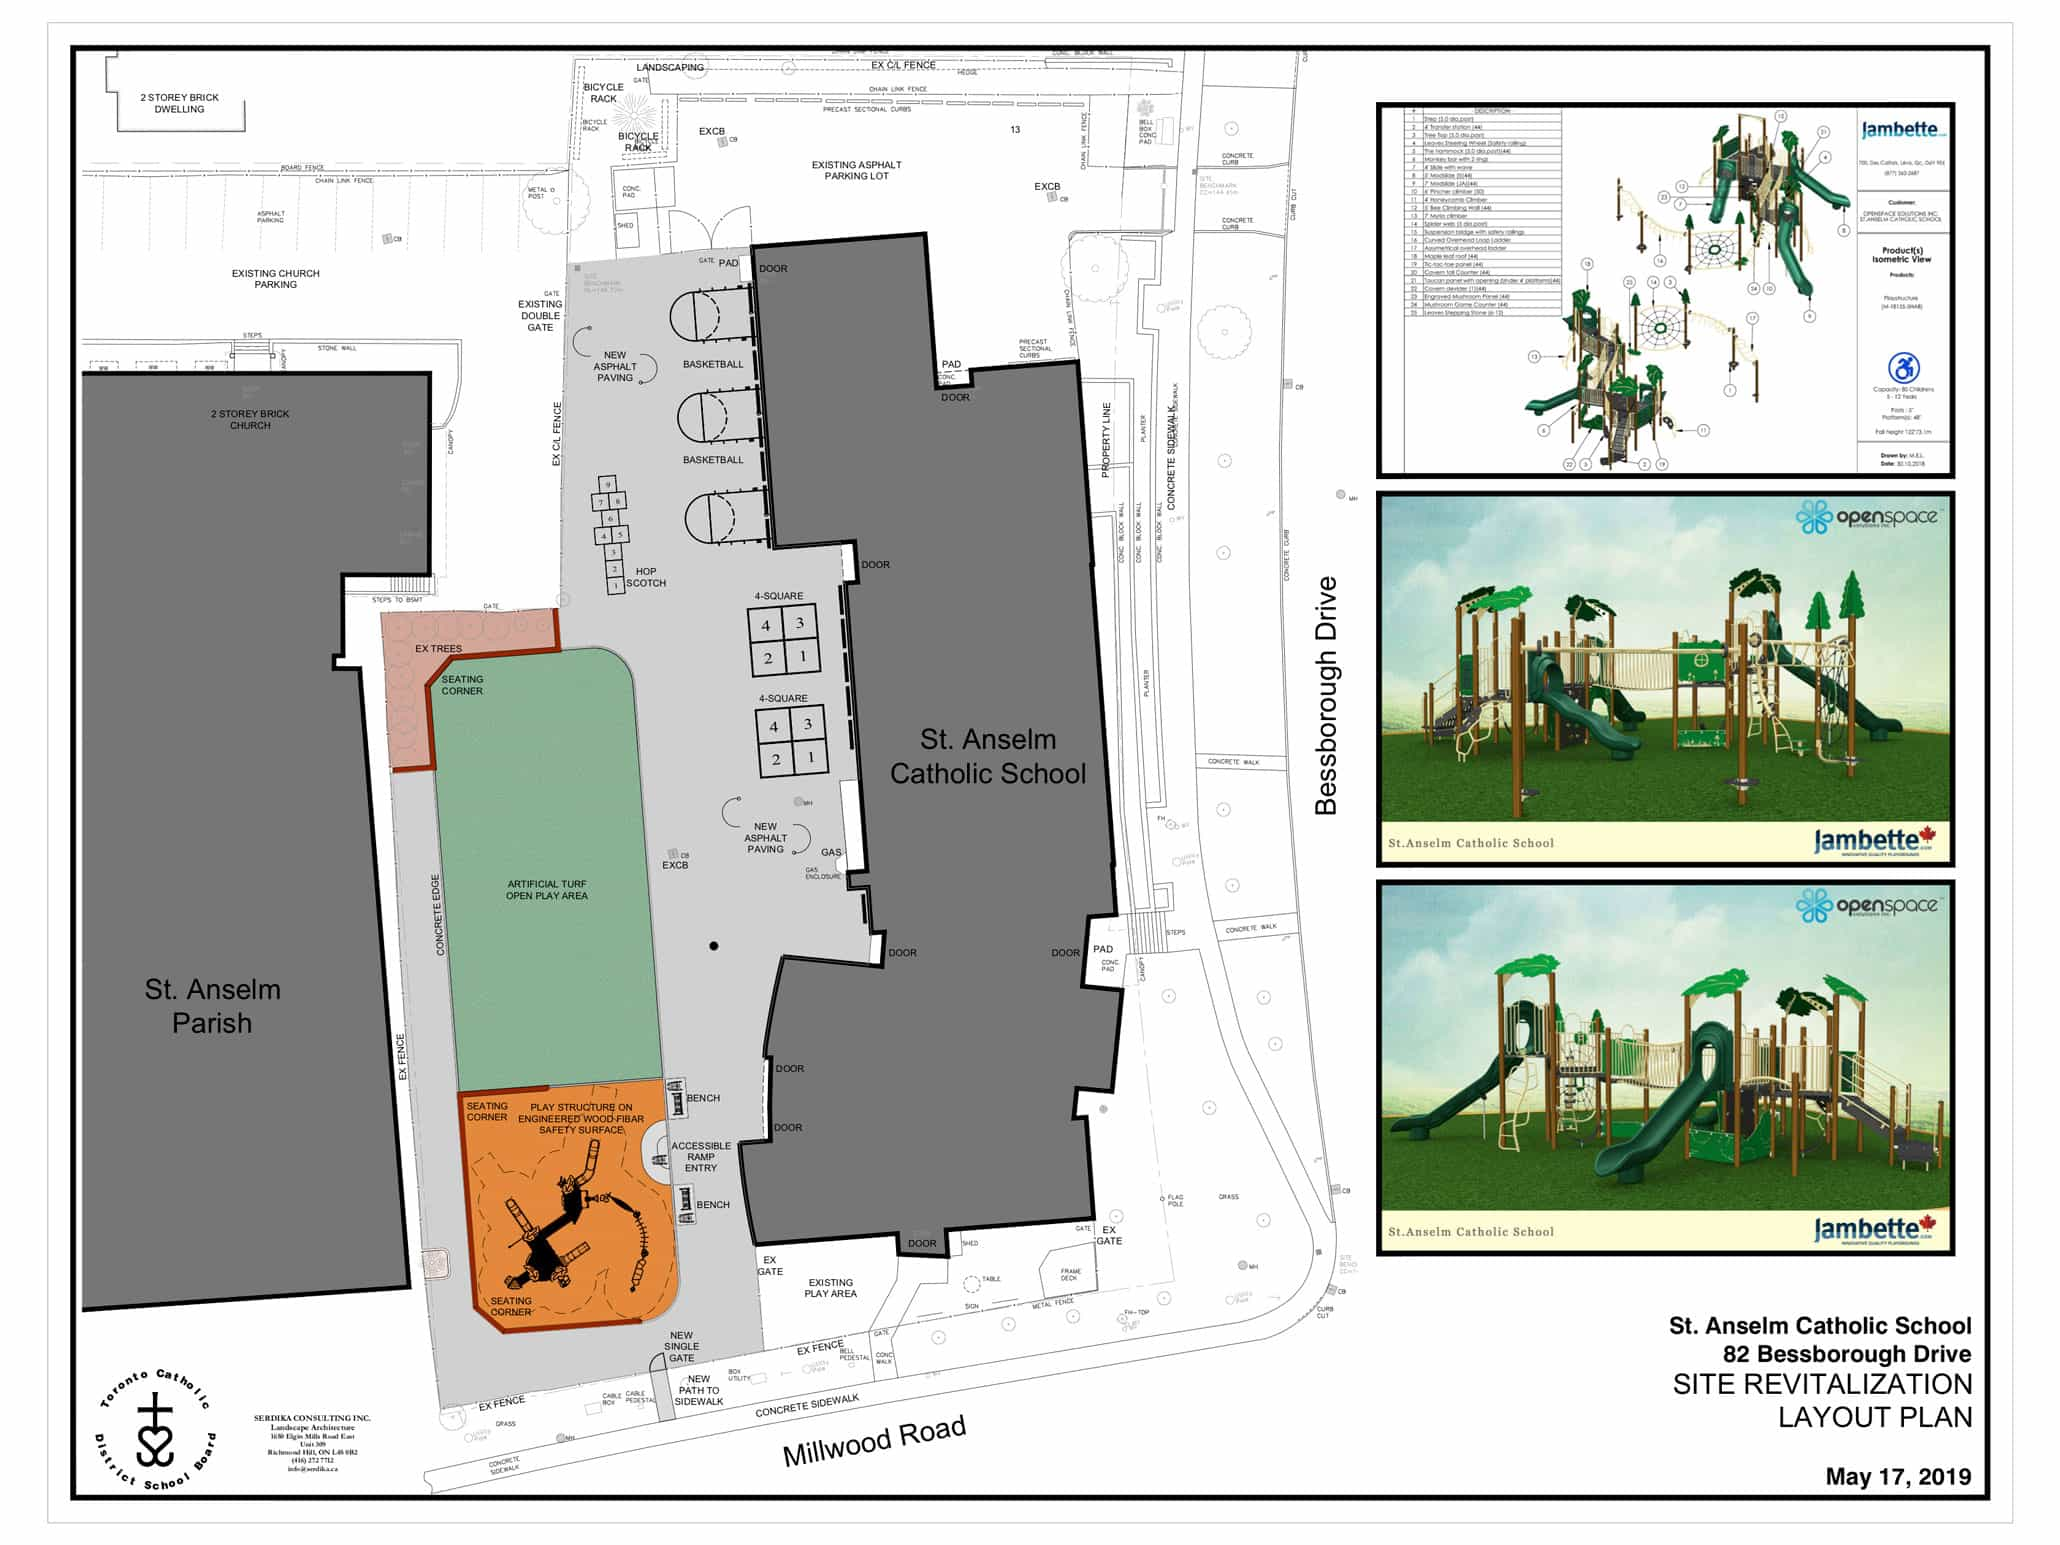 May 2019 layout of St. Anselm's new playground.